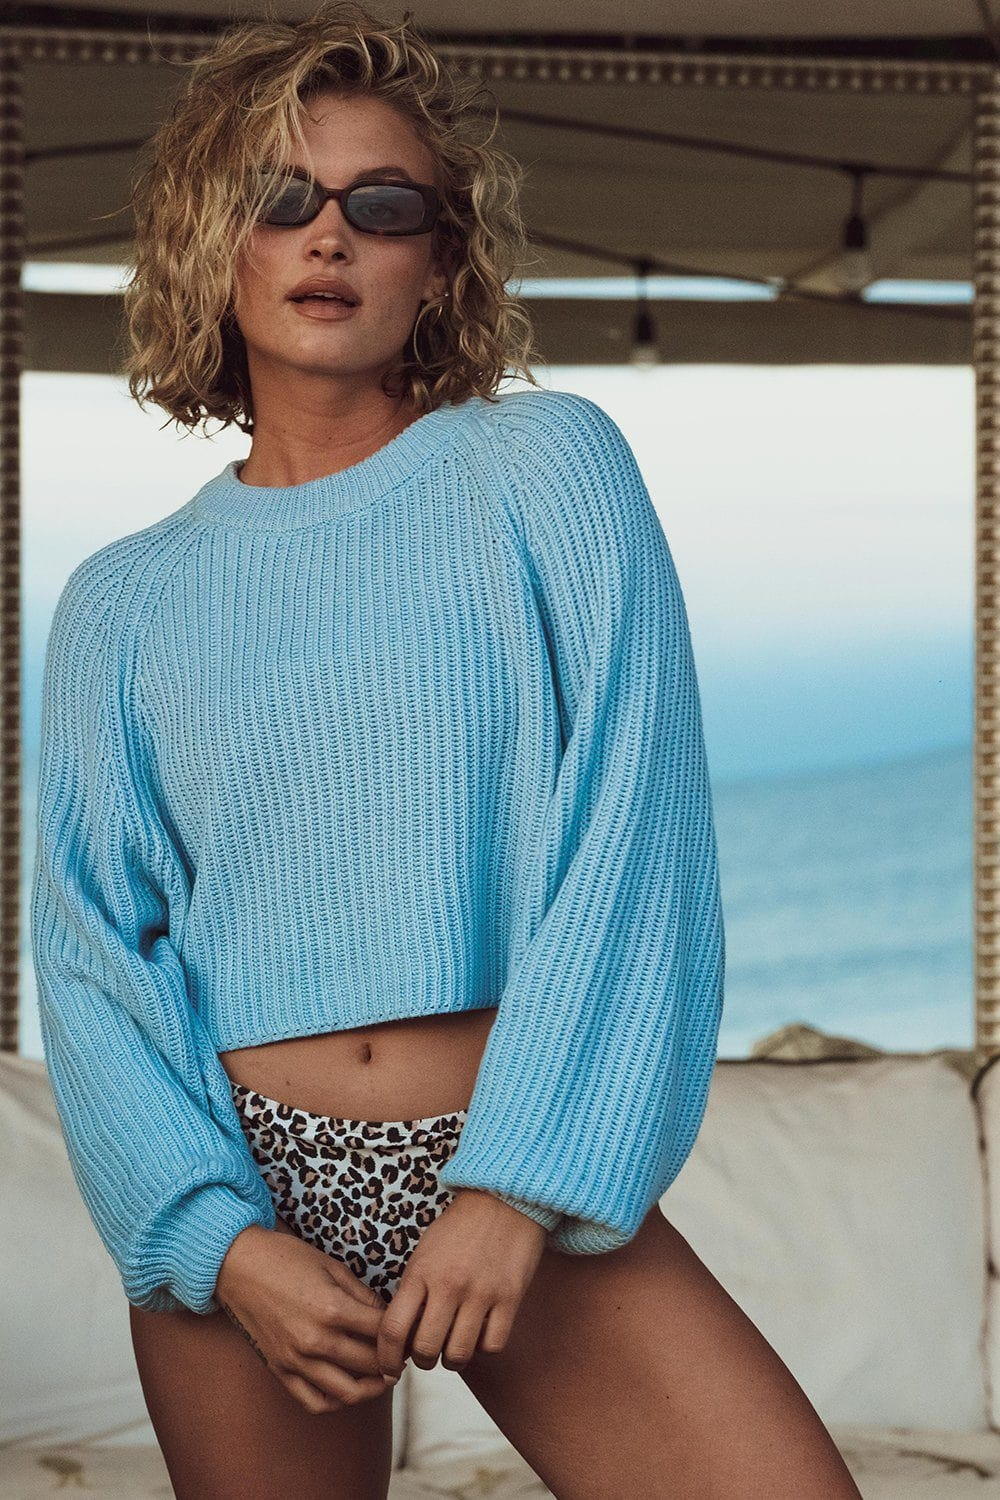 Sweet Dreams Pullover in Sky Blue Top Cotton Candy LA Clad and Cloth